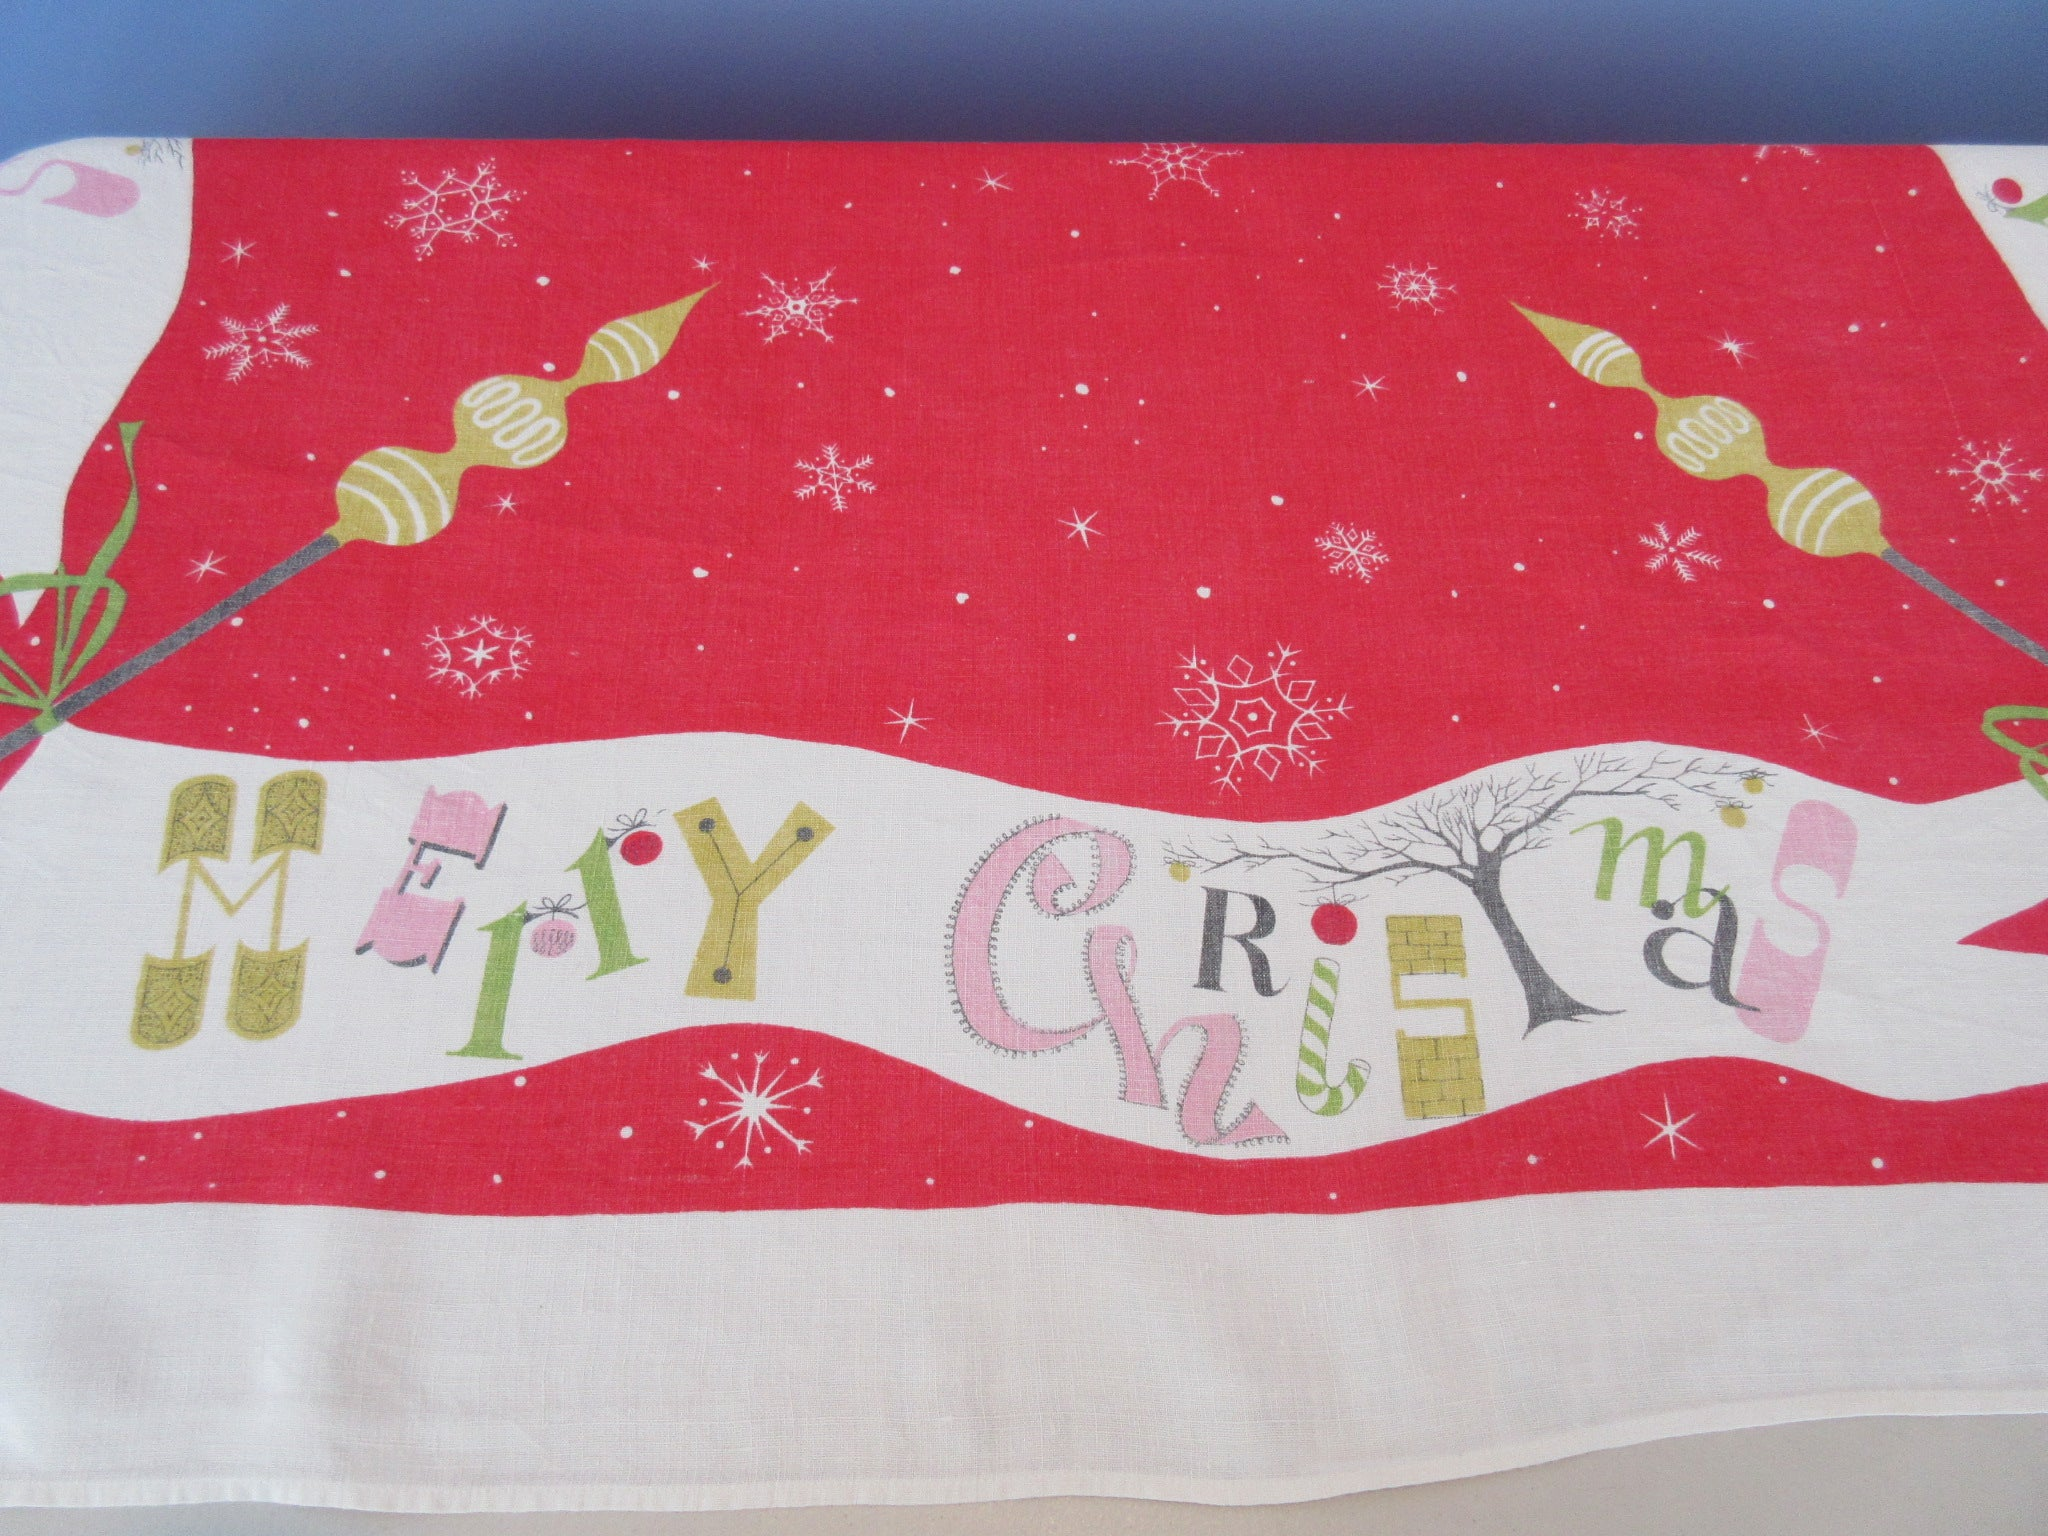 HTF Merry Christmas Banners Funky Atomic Christmas Novelty Vintage Printed Tablecloth (65 X 51)